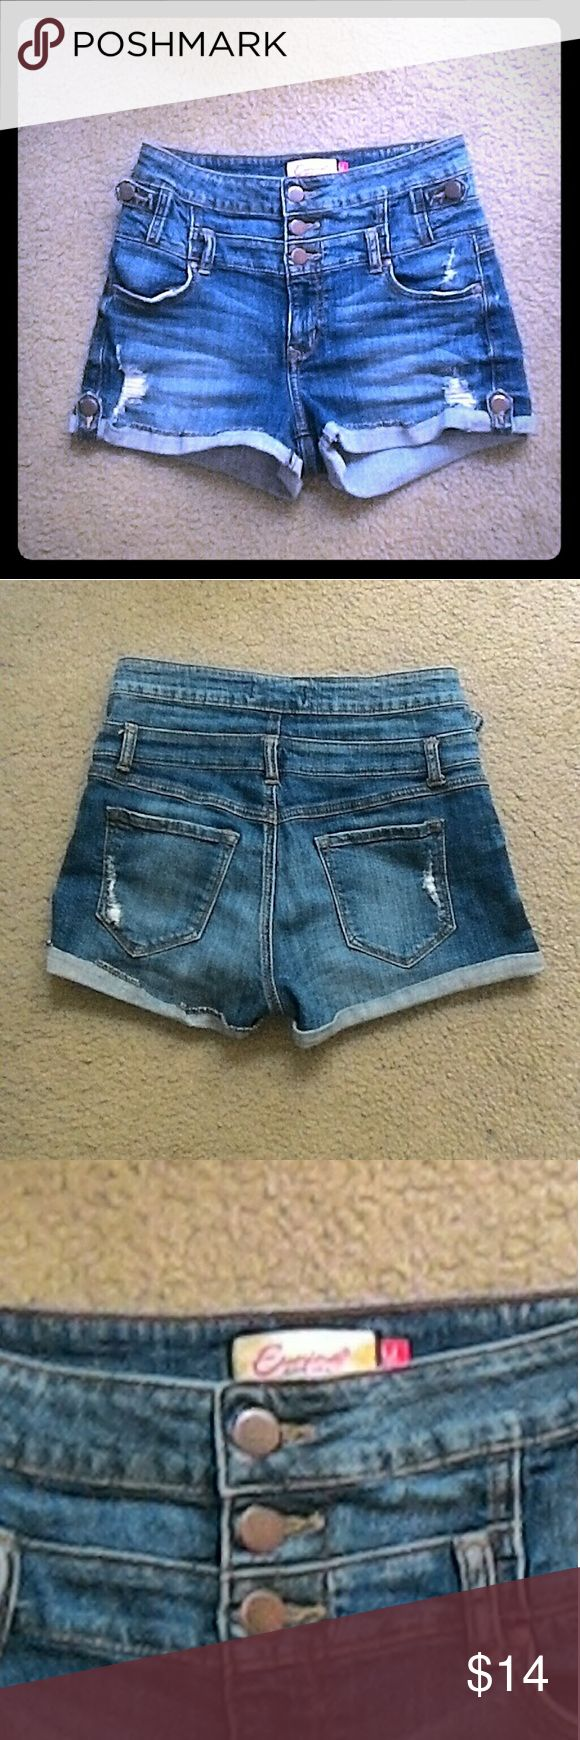 """EUC Eunina High-Waisted Shorts No flaws. Factory distressed. Lots of stretch. Fabric contents are in Spanish, so I'm not sure what they are. Very comfortable. 26"""" waist laid flat and measured from the back. 2"""" inseam and 10"""" rise! Eunina Shorts Jean Shorts"""